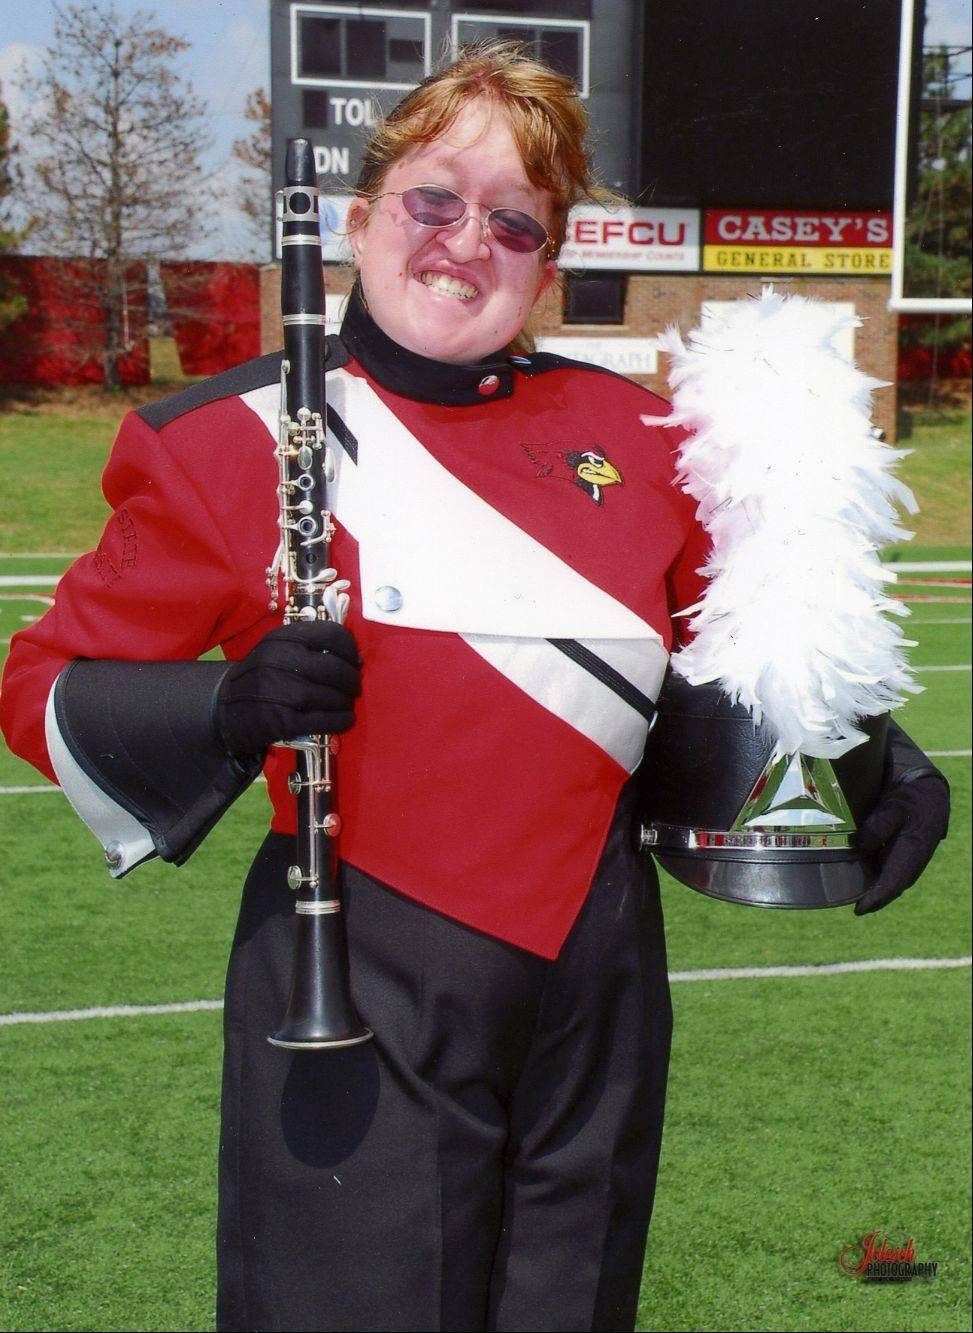 Allison Zak, 19, of Schaumburg, found dead in her dorm room at Illinois State University on Thursday of an undiagnosed seizure disorder, was active in the ISU marching band.